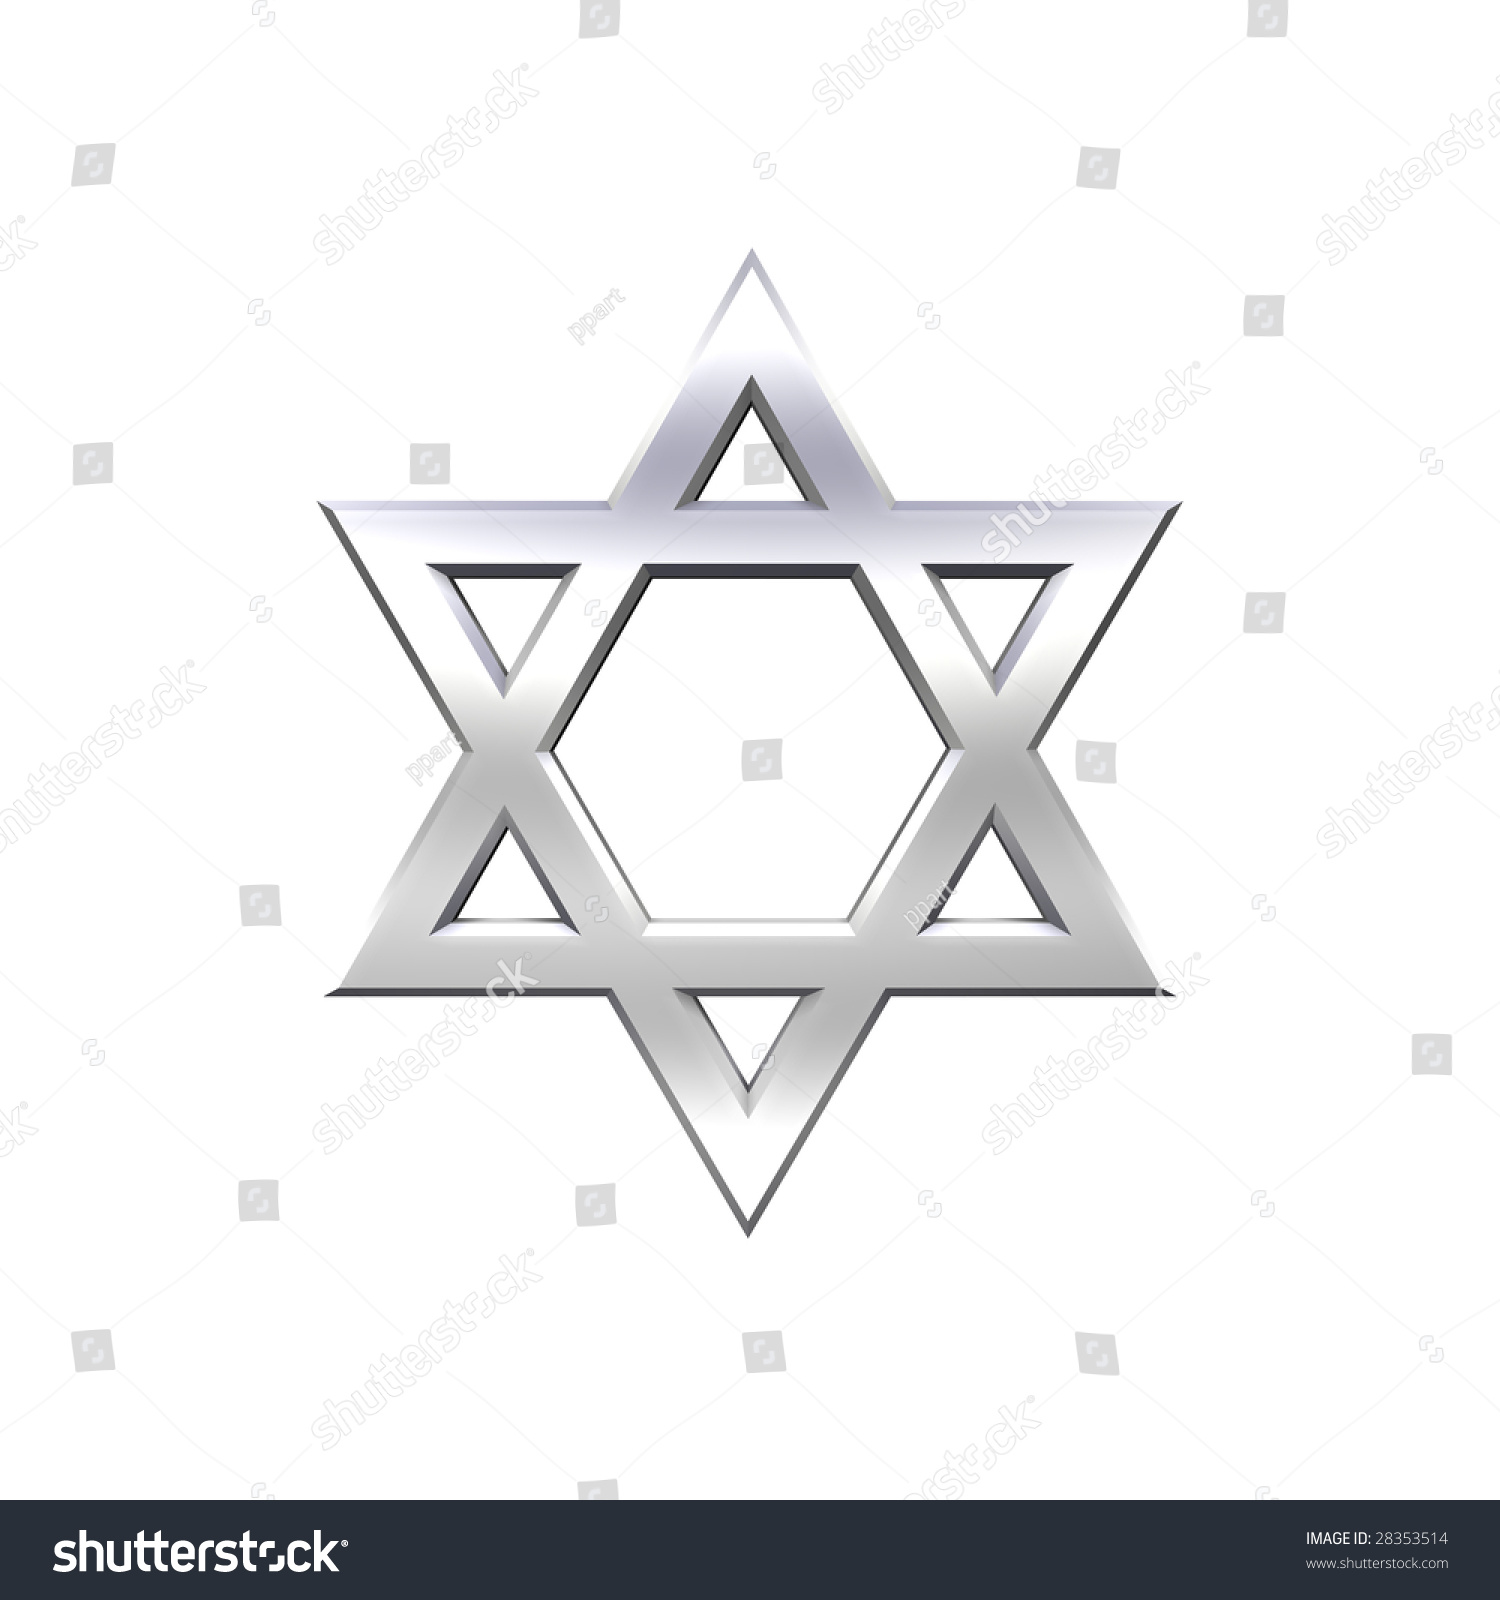 Chrome judaism religious symbol star david stock illustration chrome judaism religious symbol star of david isolated on white computer generated 3d photo biocorpaavc